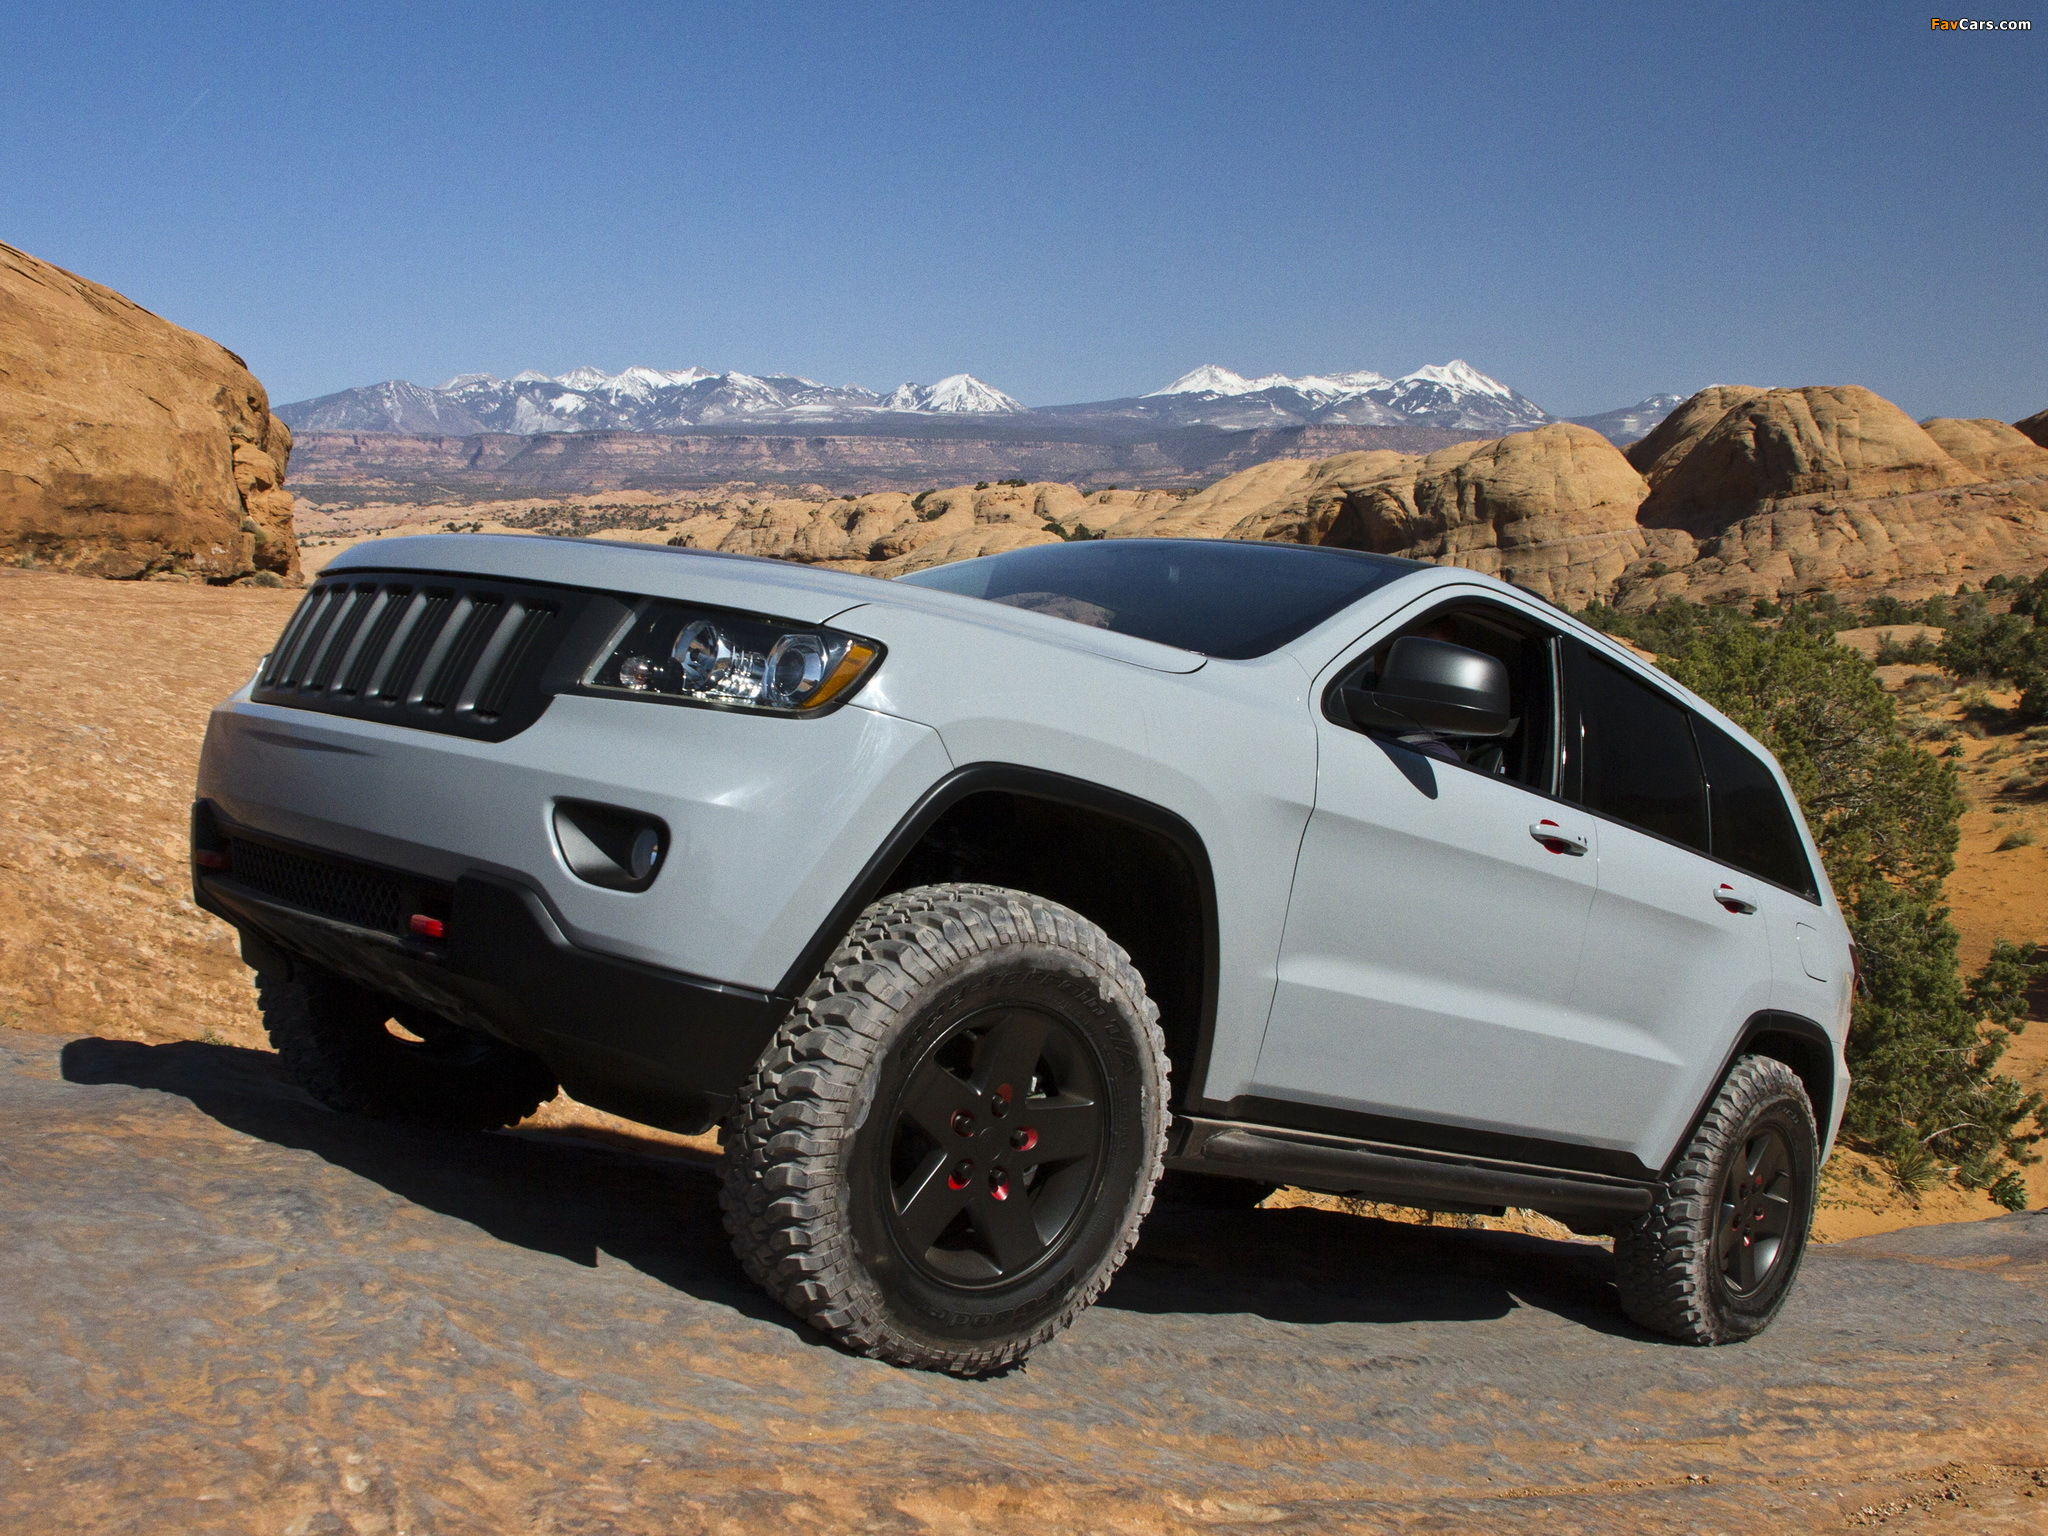 Mopar Jeep Grand Cherokee Off Road Edition Concept Wk2